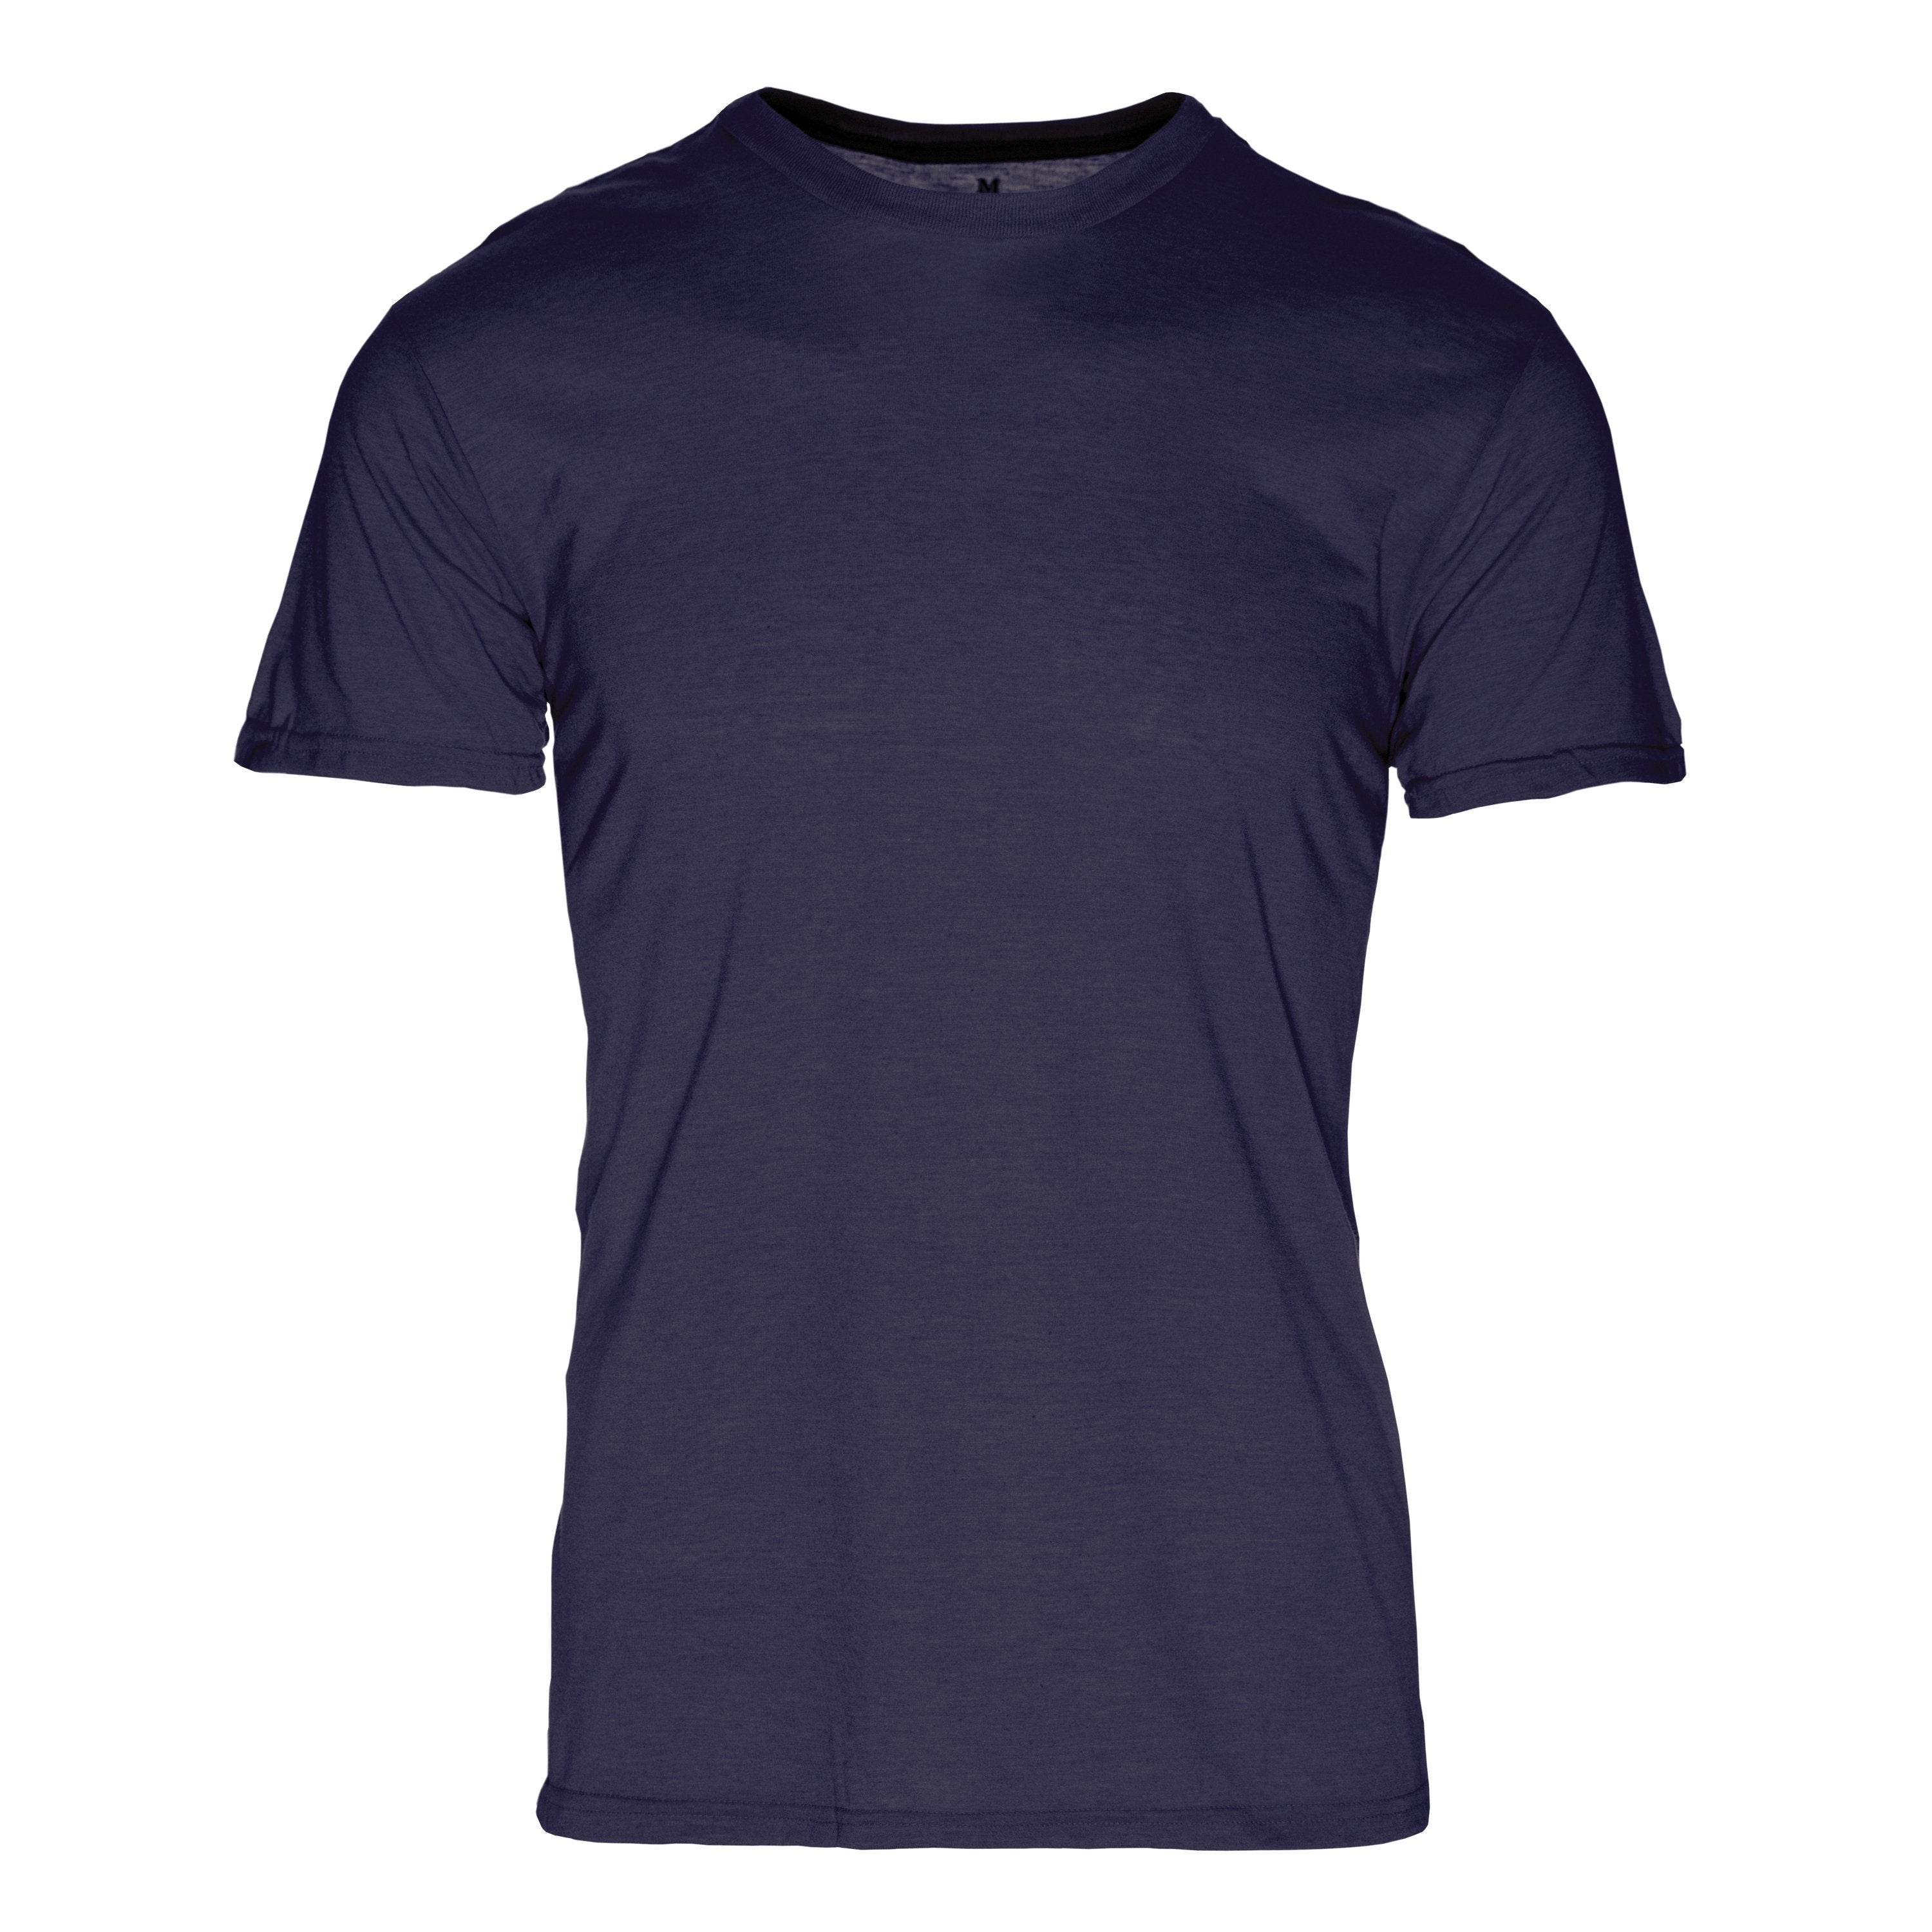 PC101NV Eco REPREVE® Recycled Polyester/Cotton Crew T-Shirt - Navy